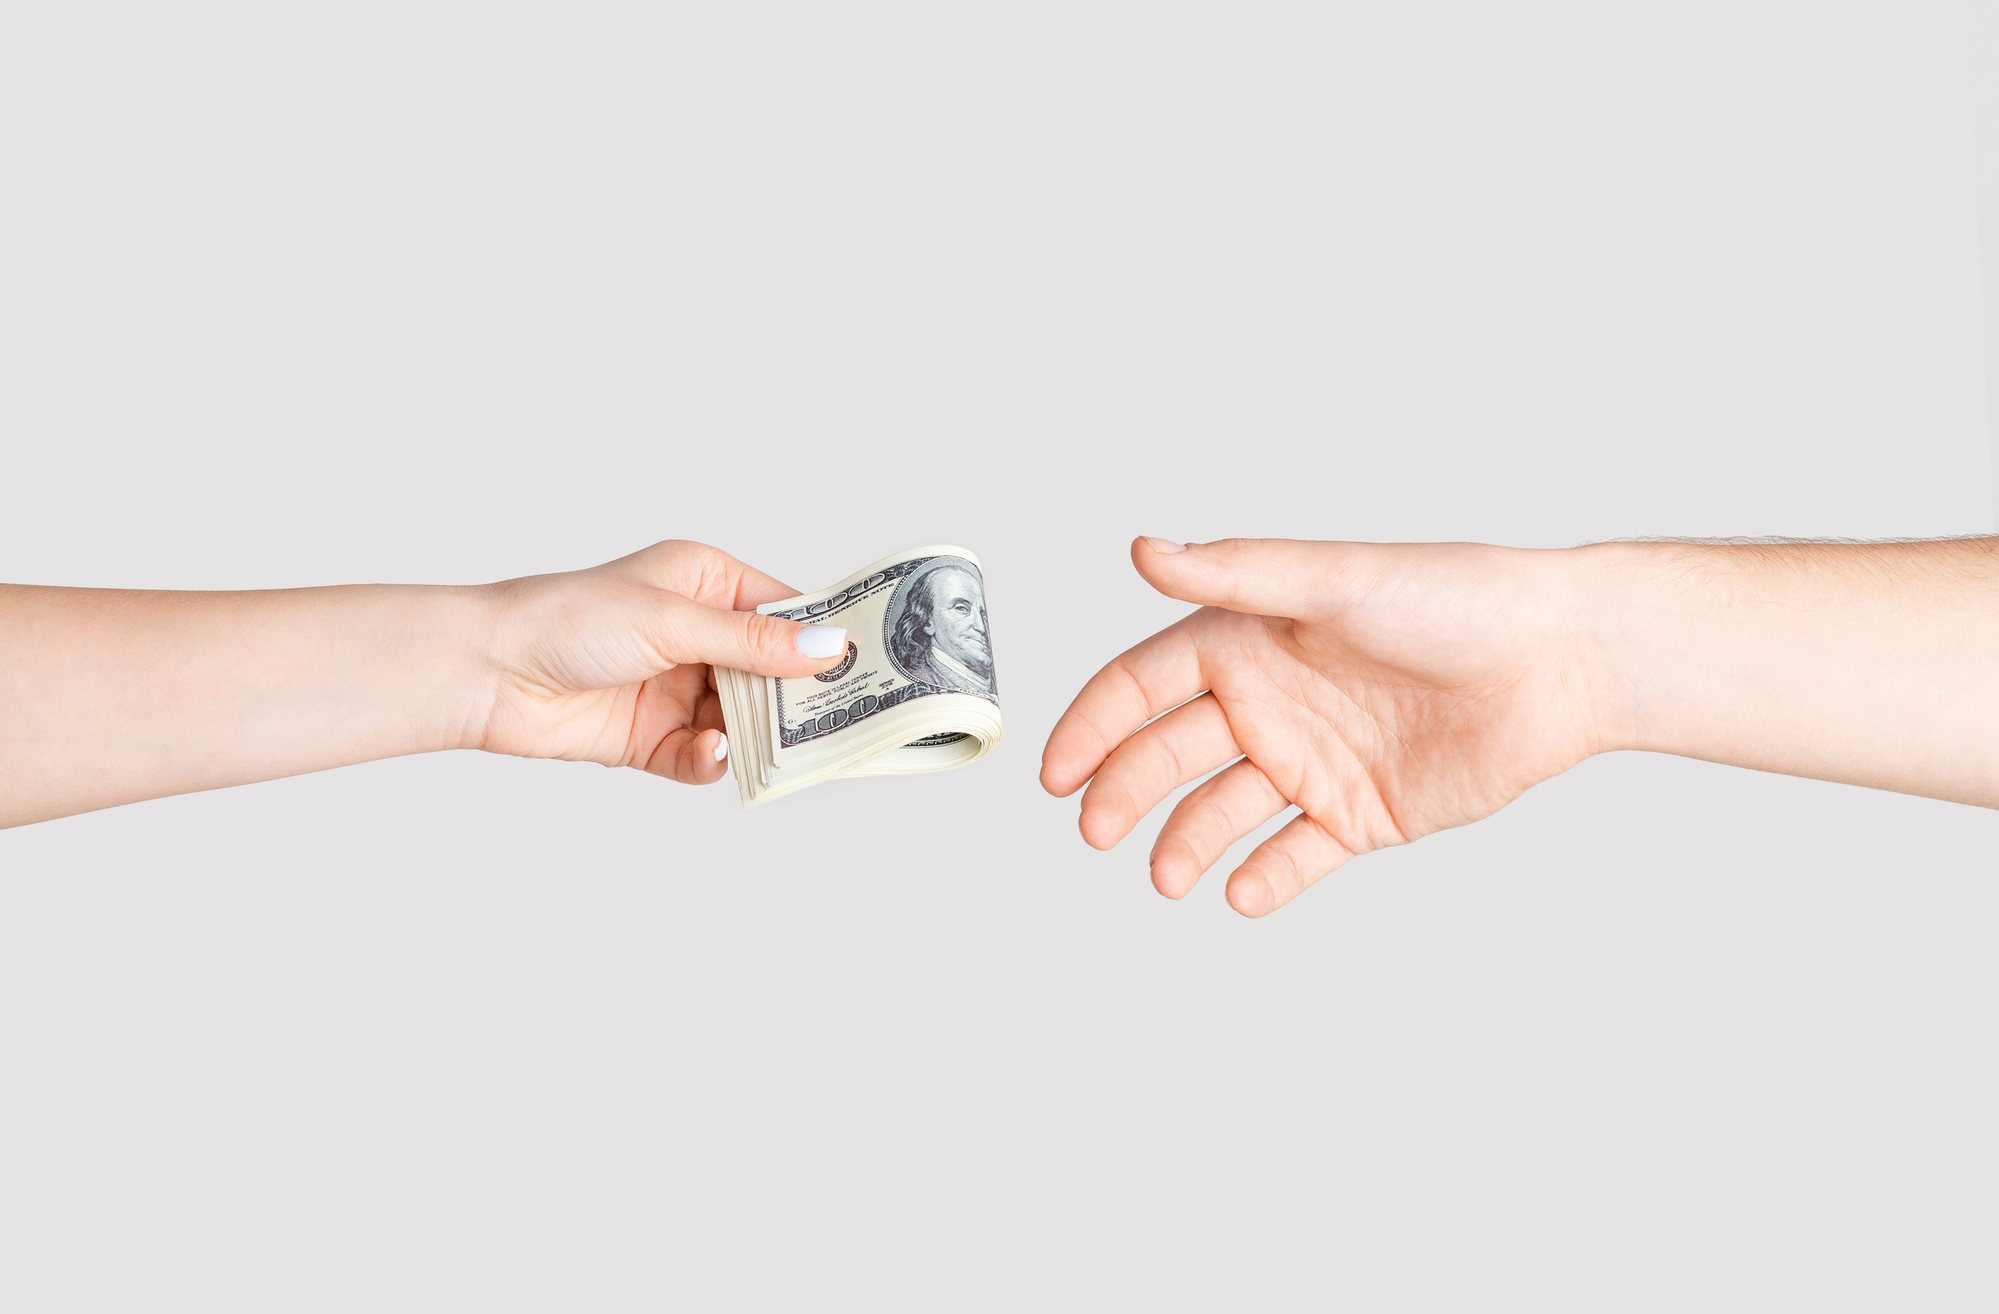 Young woman giving money to man over white background, close up of hands